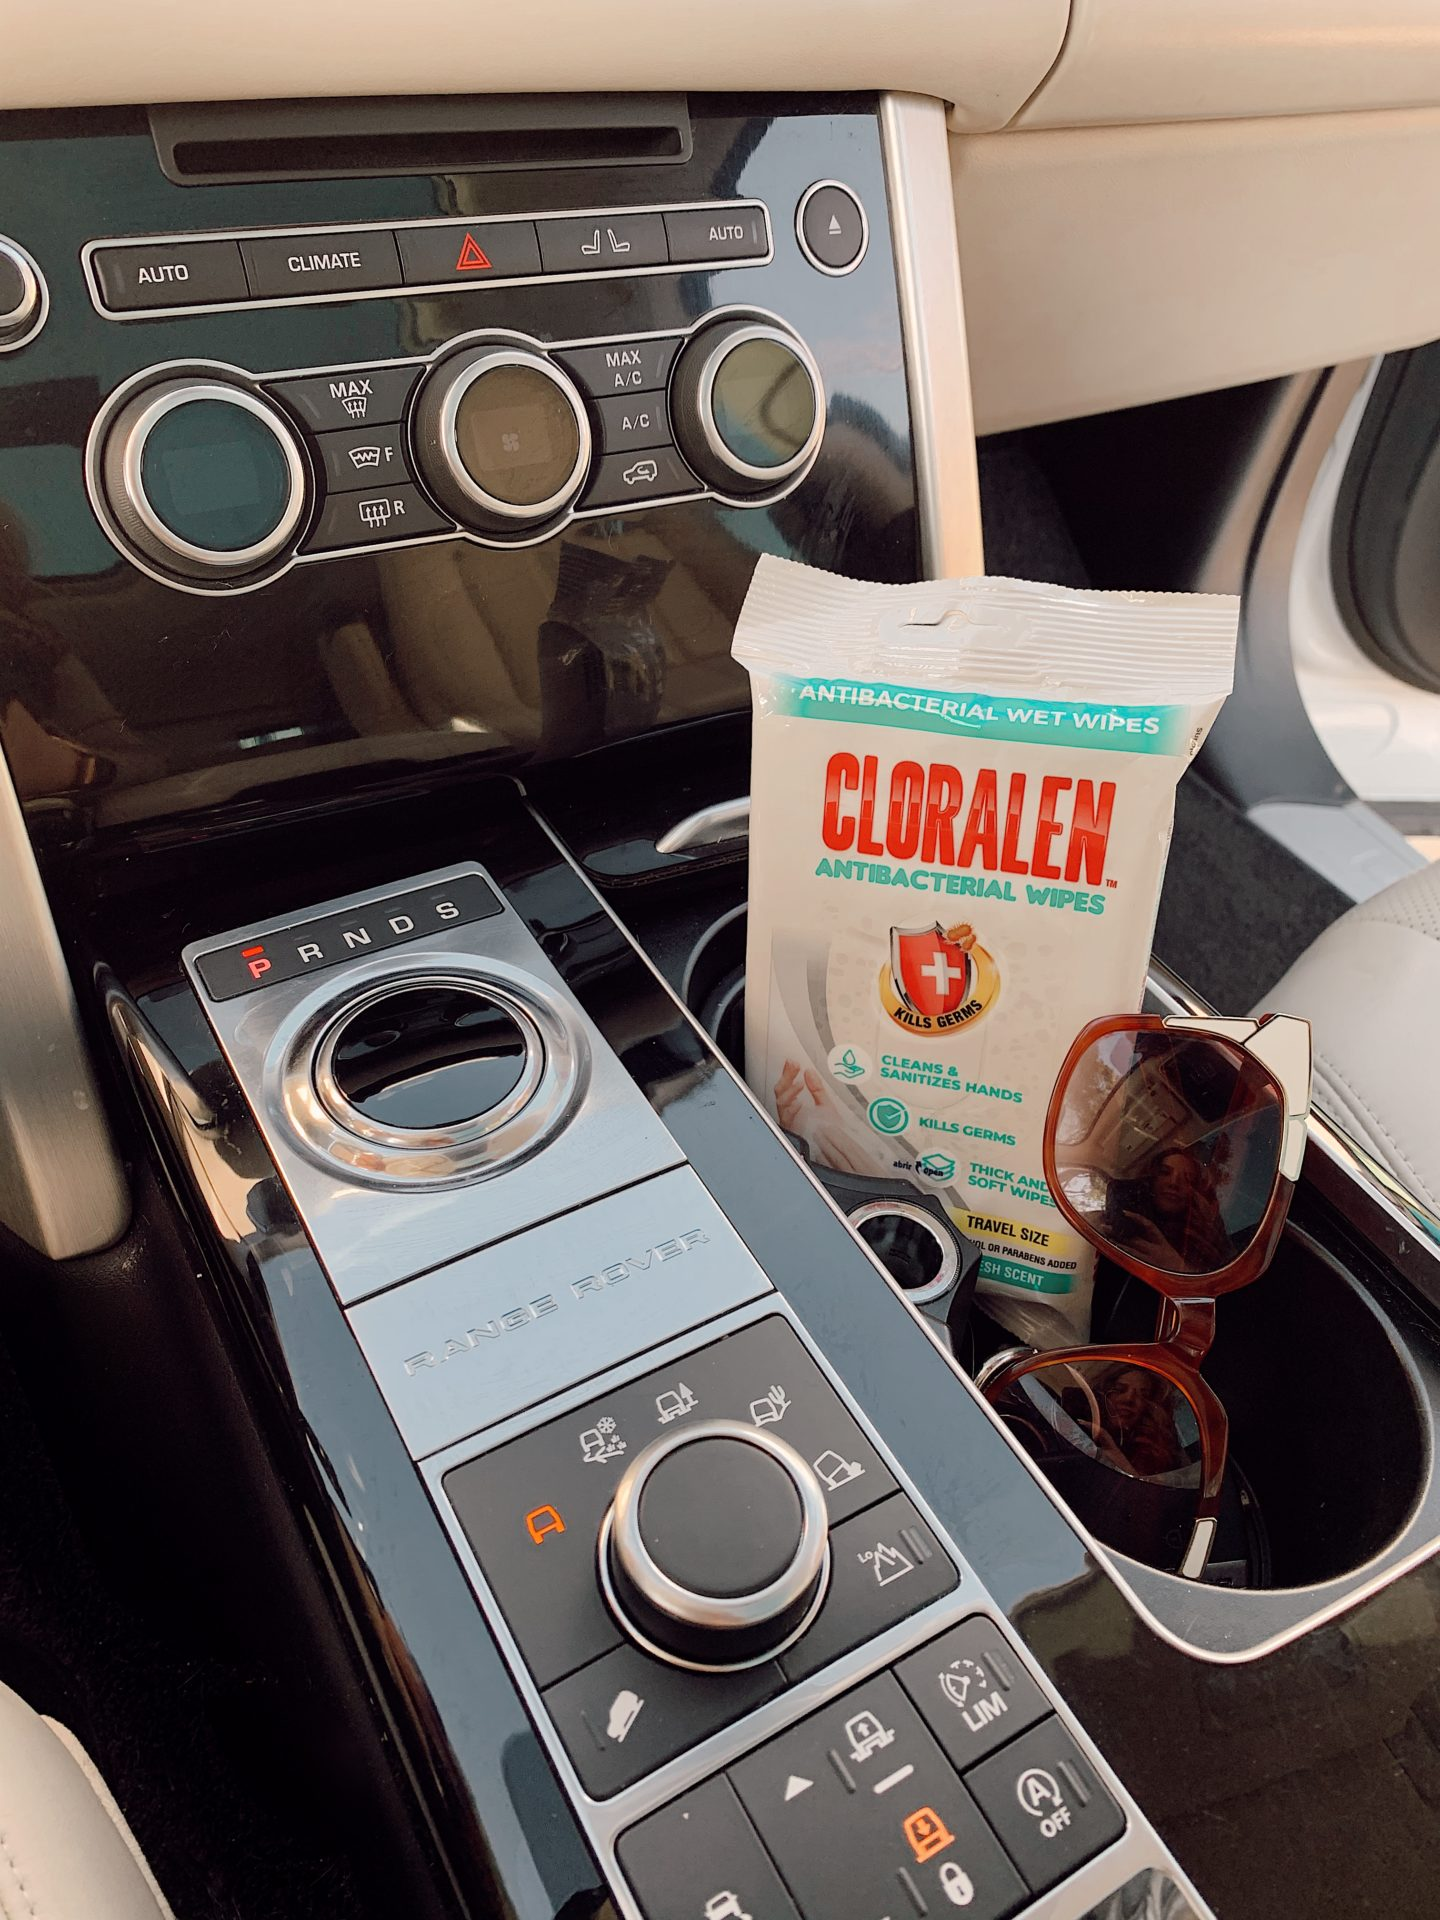 CLORALEN wipes |Spring Cleaning Hacks by popular San Francisco lifestyle blog, Just Add Glam: image of Cloralen wipes in a car next to some sunglasses.